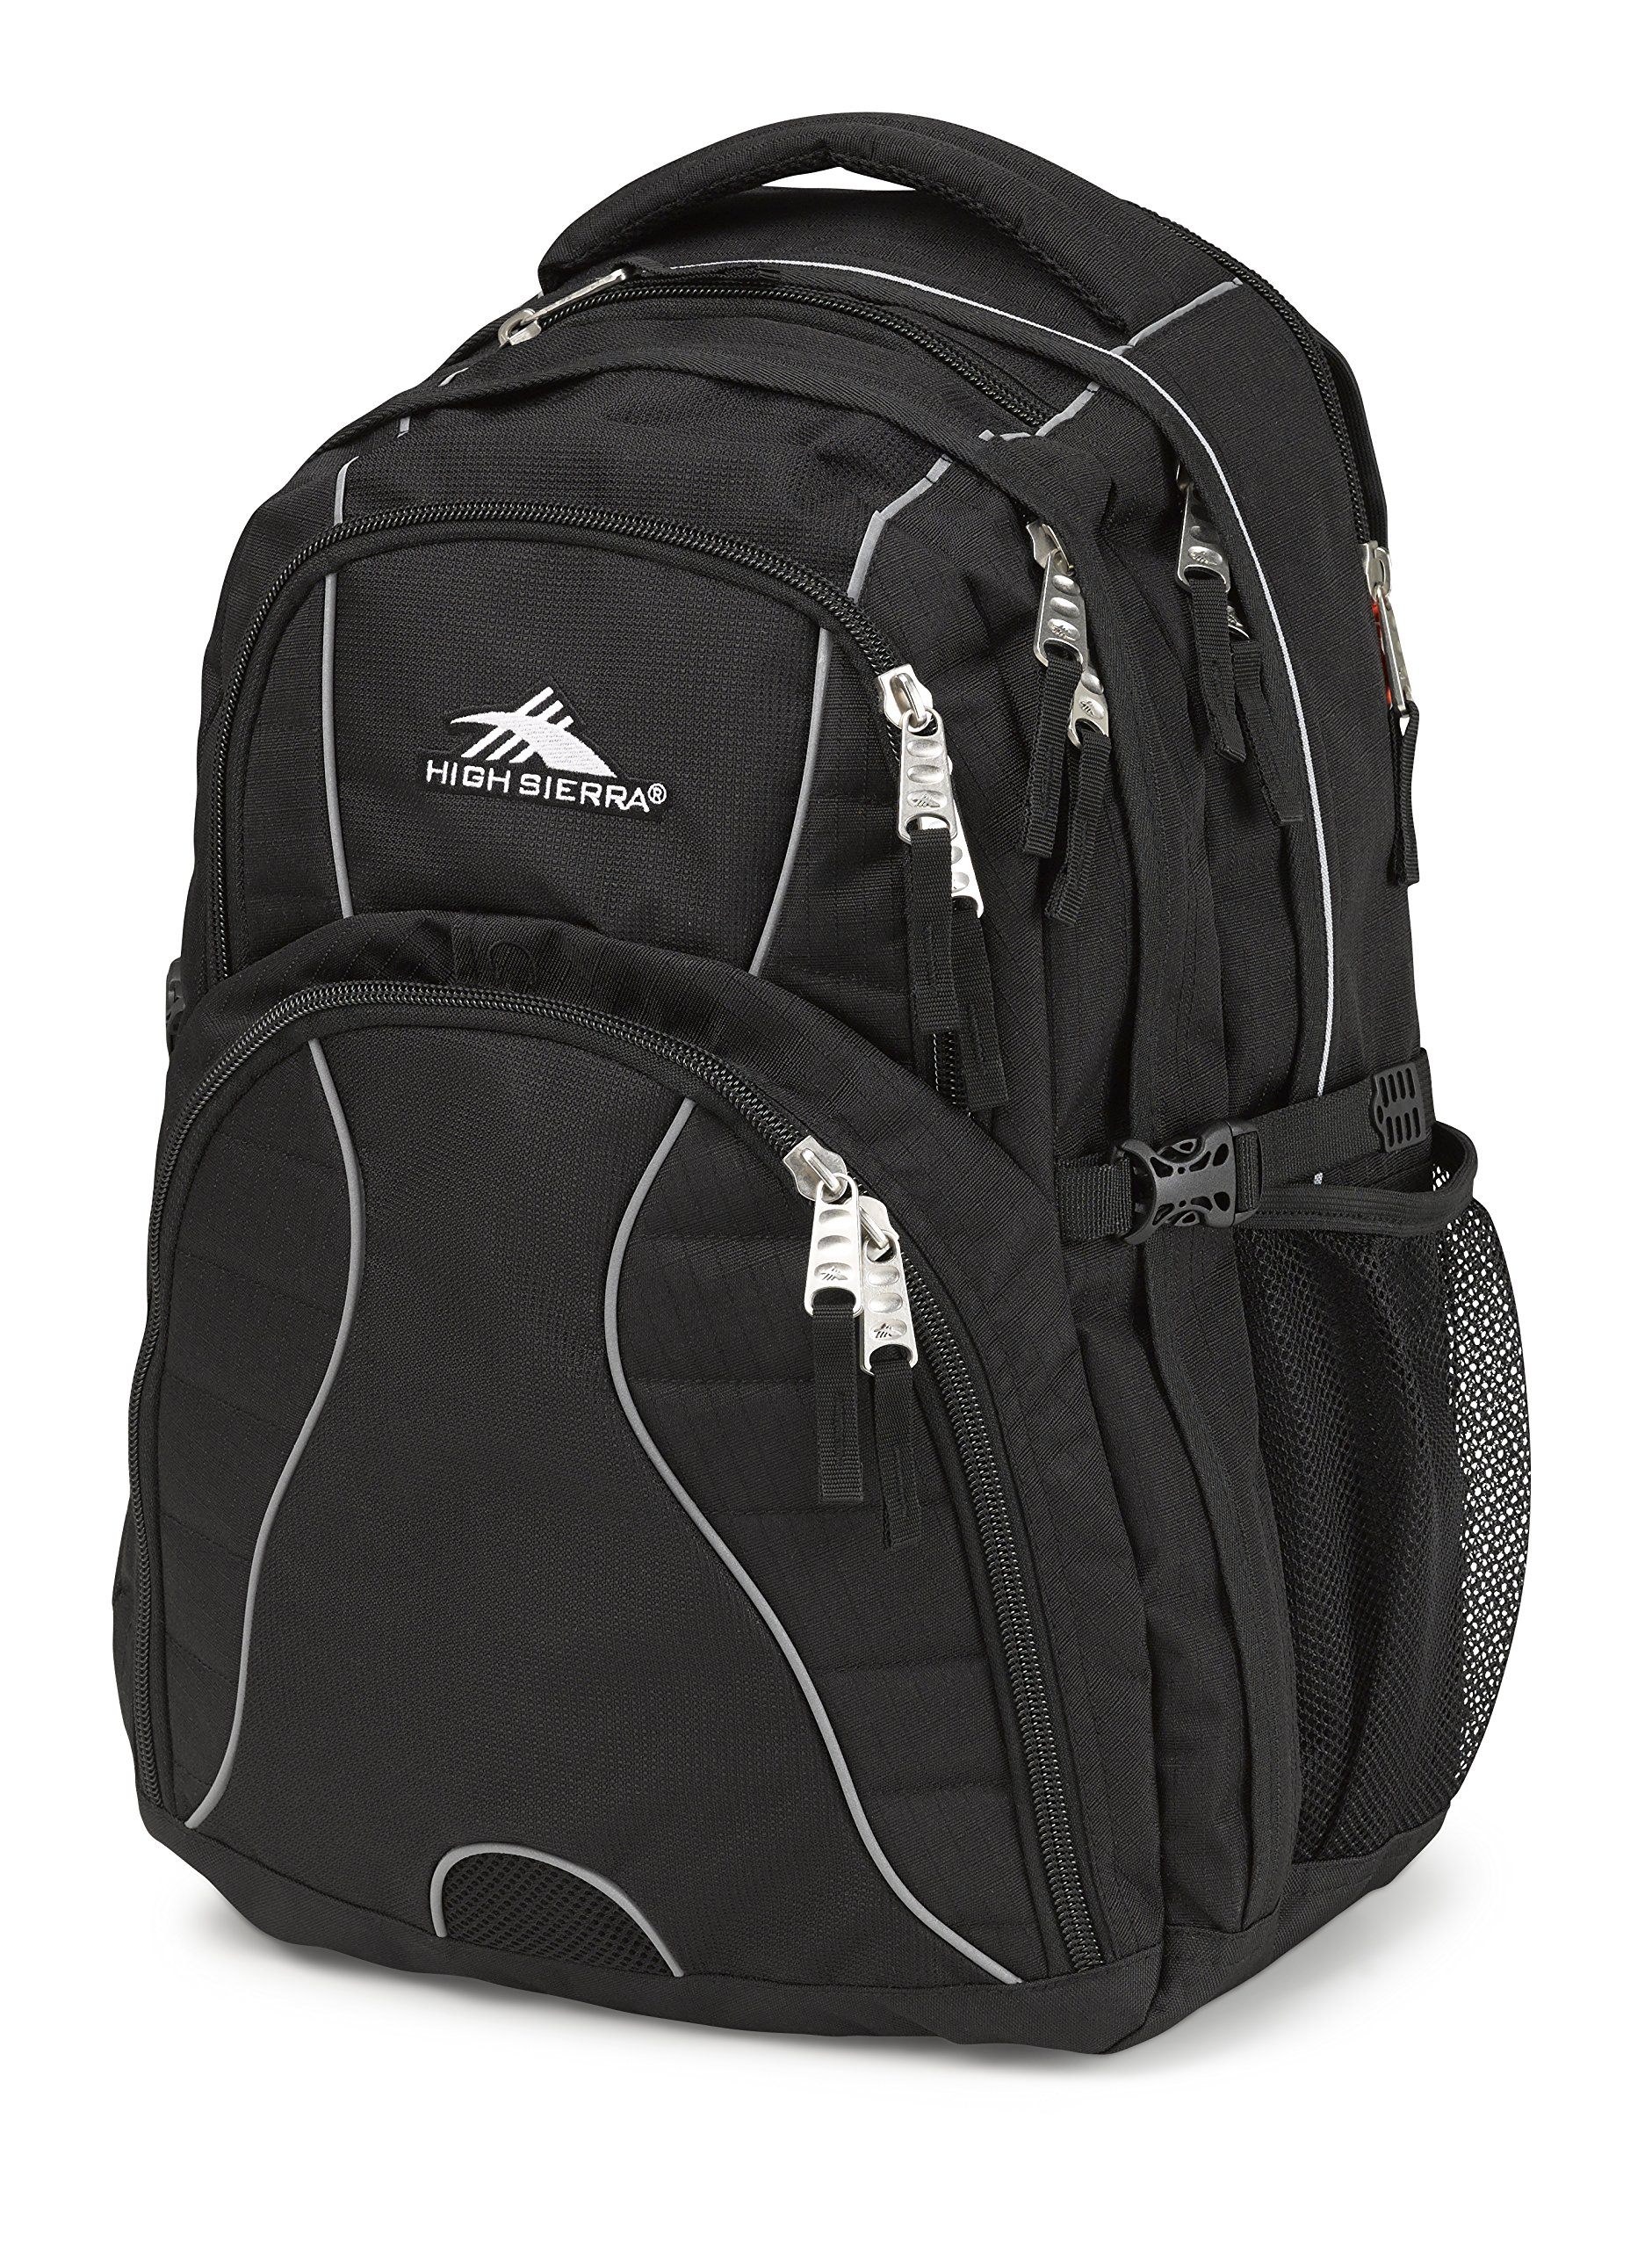 High Sierra Swerve Backpack, Black